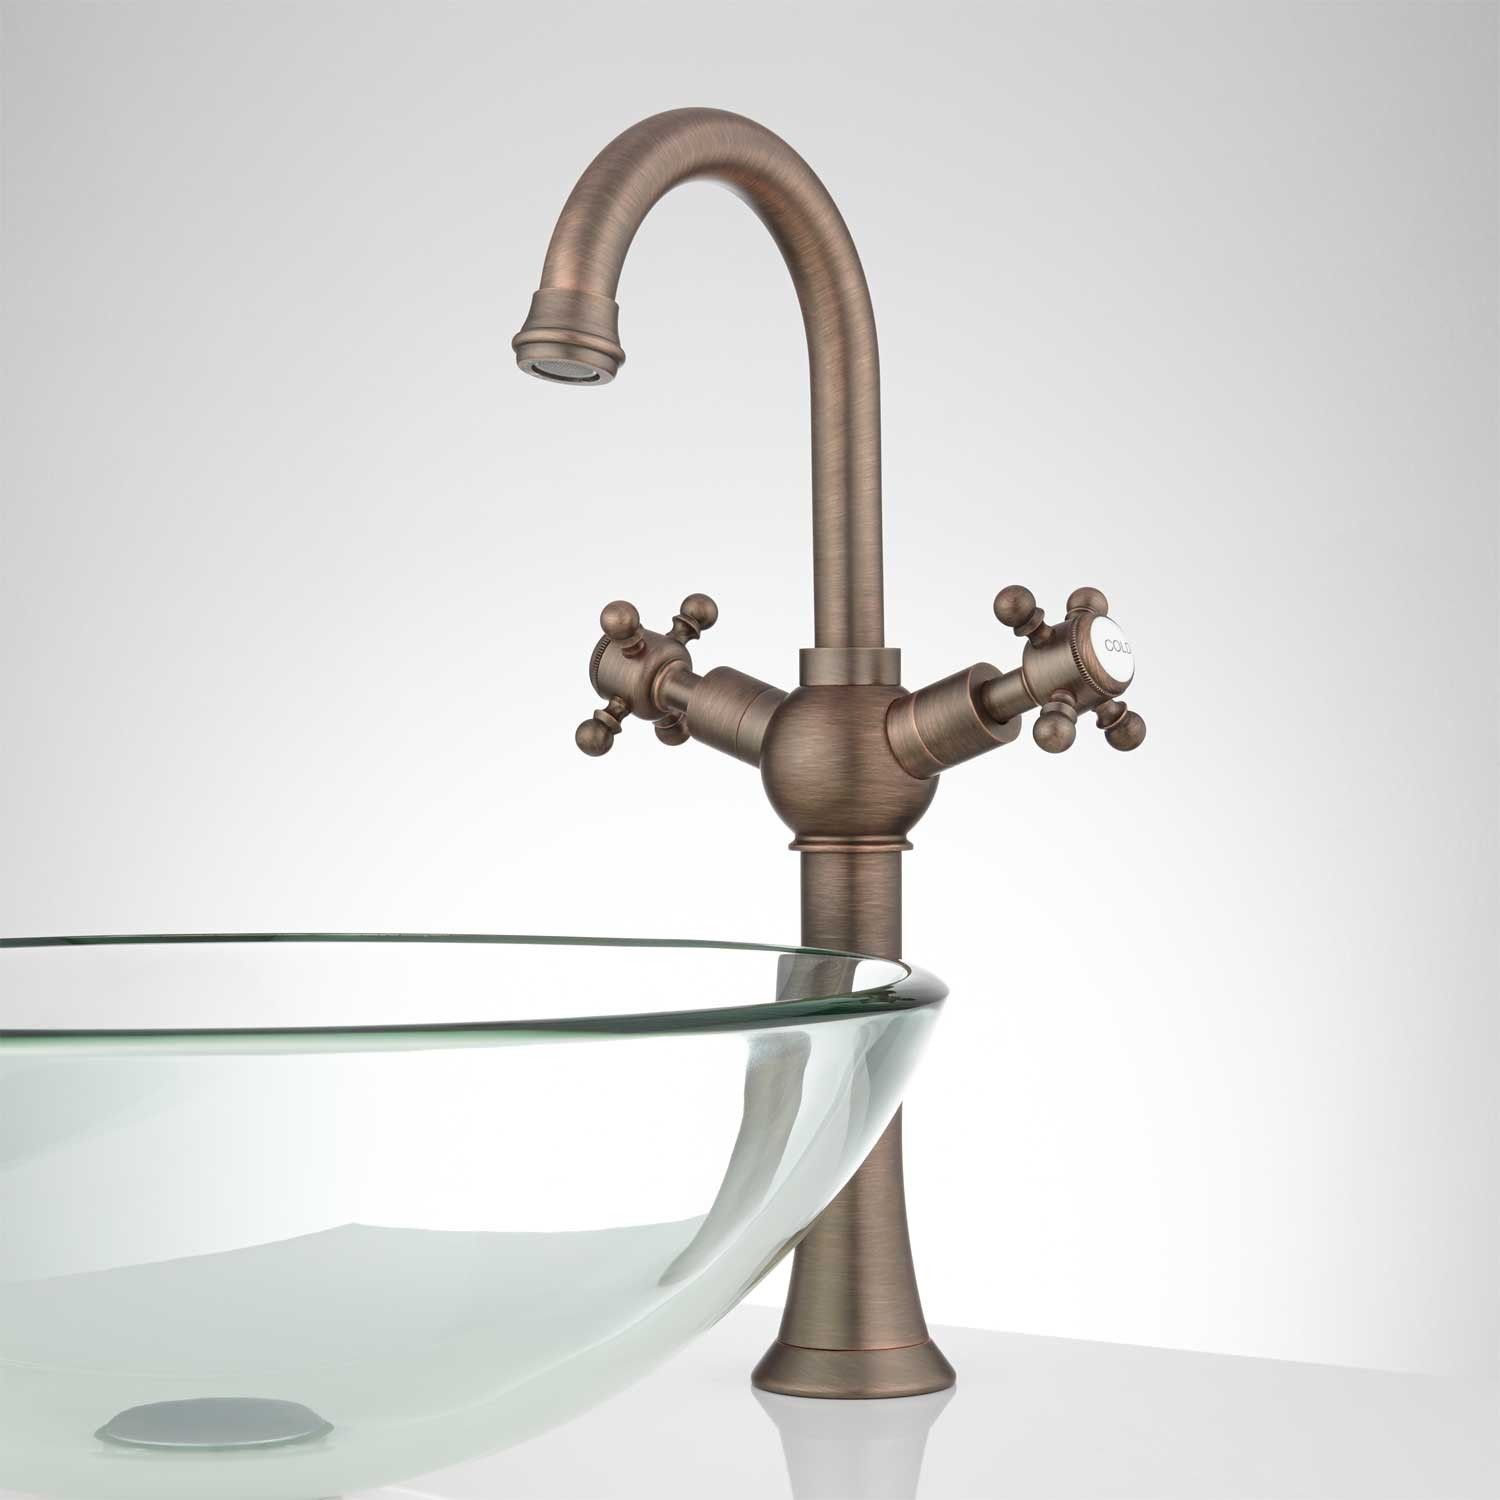 Lovely Oil Rubbed Bronze Vessel Sink Faucet $194.95